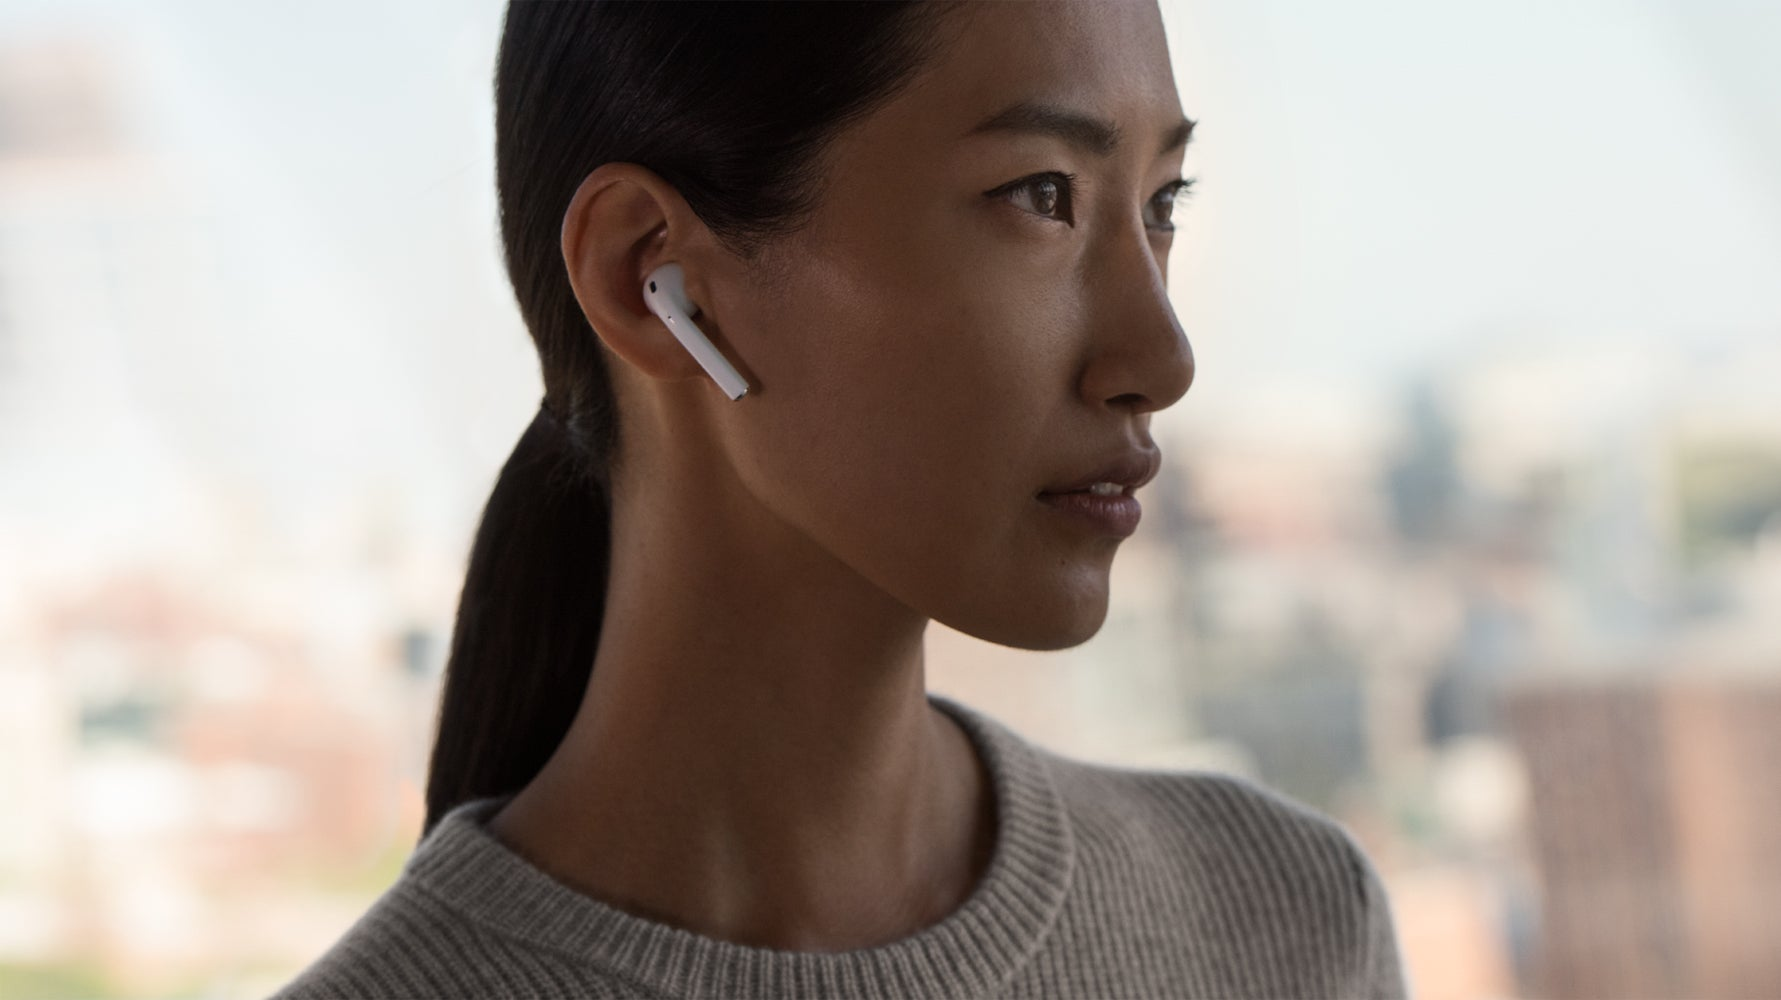 Apple Expected to Double AirPods Sales in 2018 | The Motley Fool